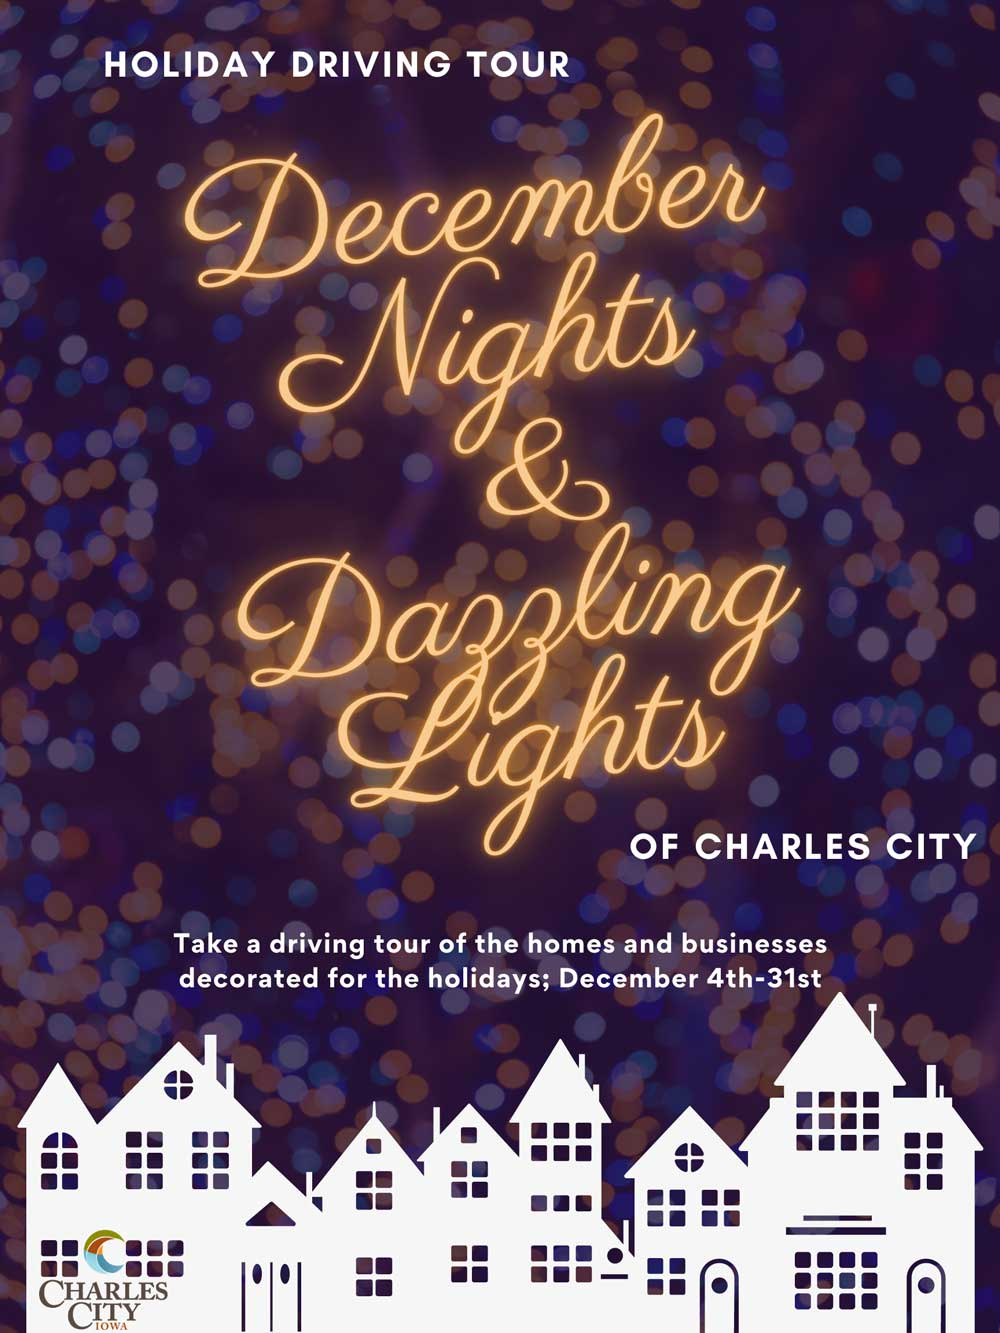 Charles City Chamber organizing holiday lights driving tour